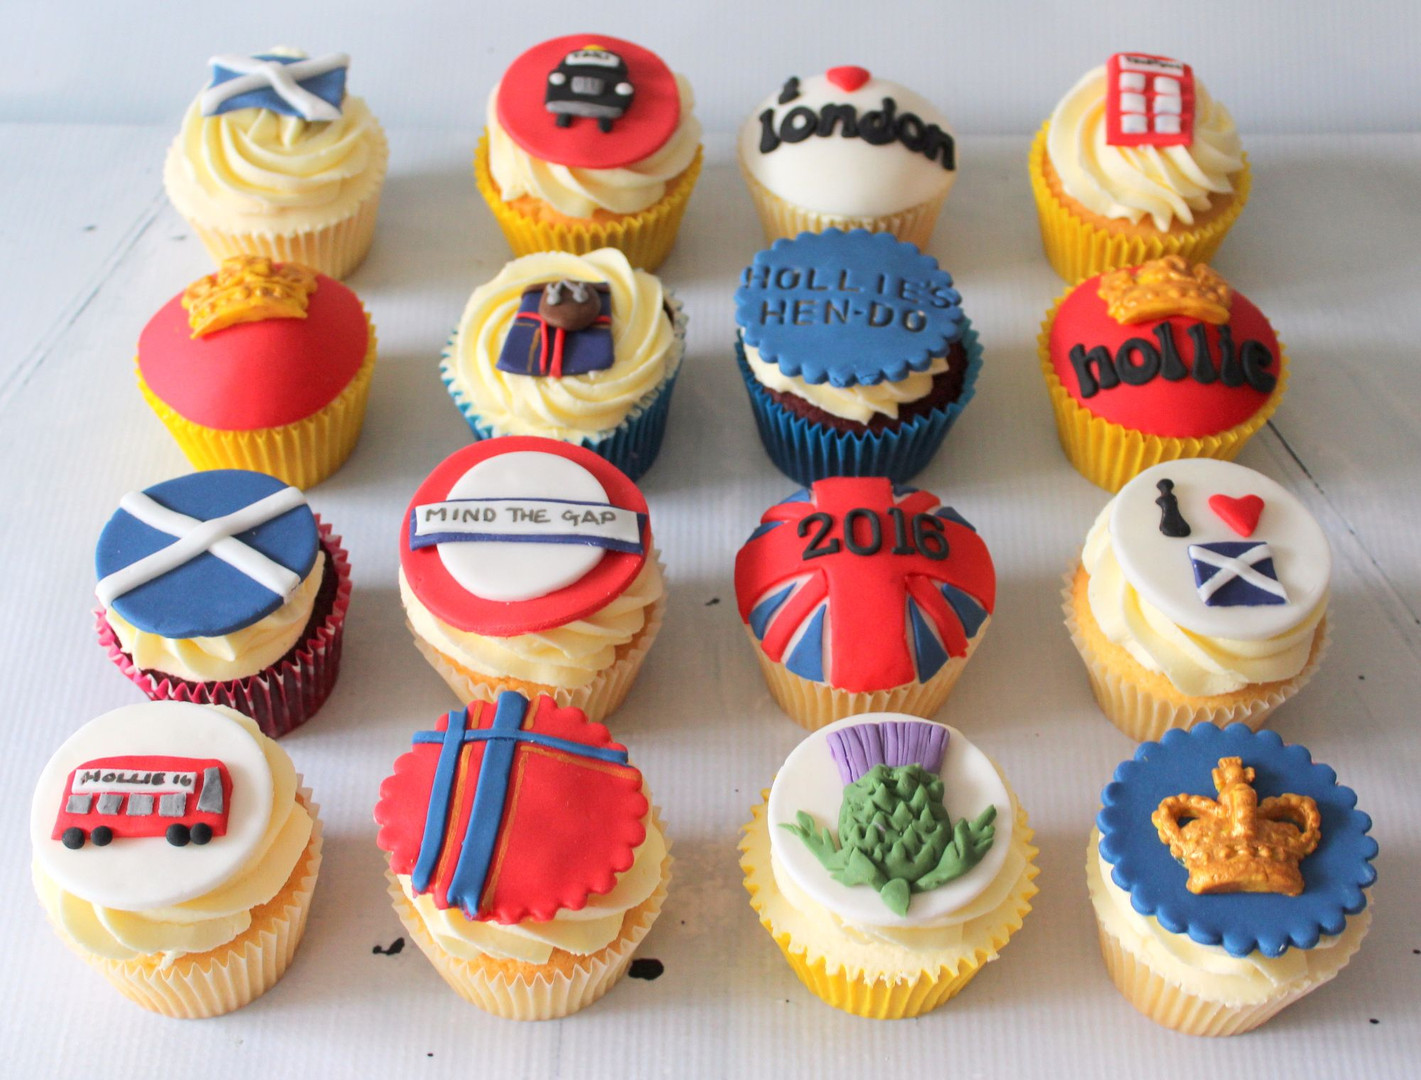 London Themed Cupcakes